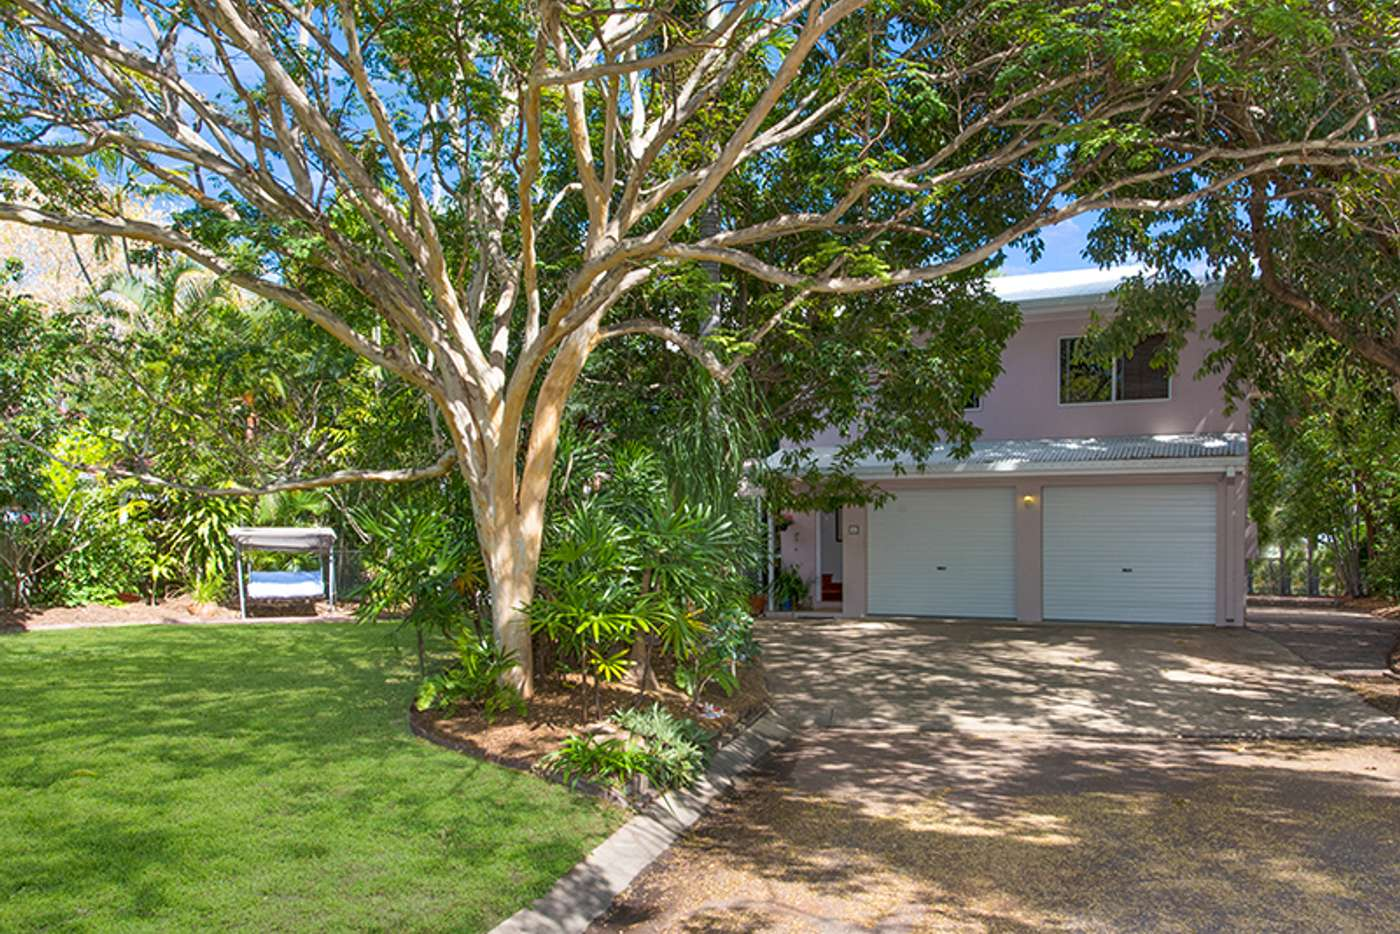 Main view of Homely house listing, 10 Bendigo Court, Annandale QLD 4814